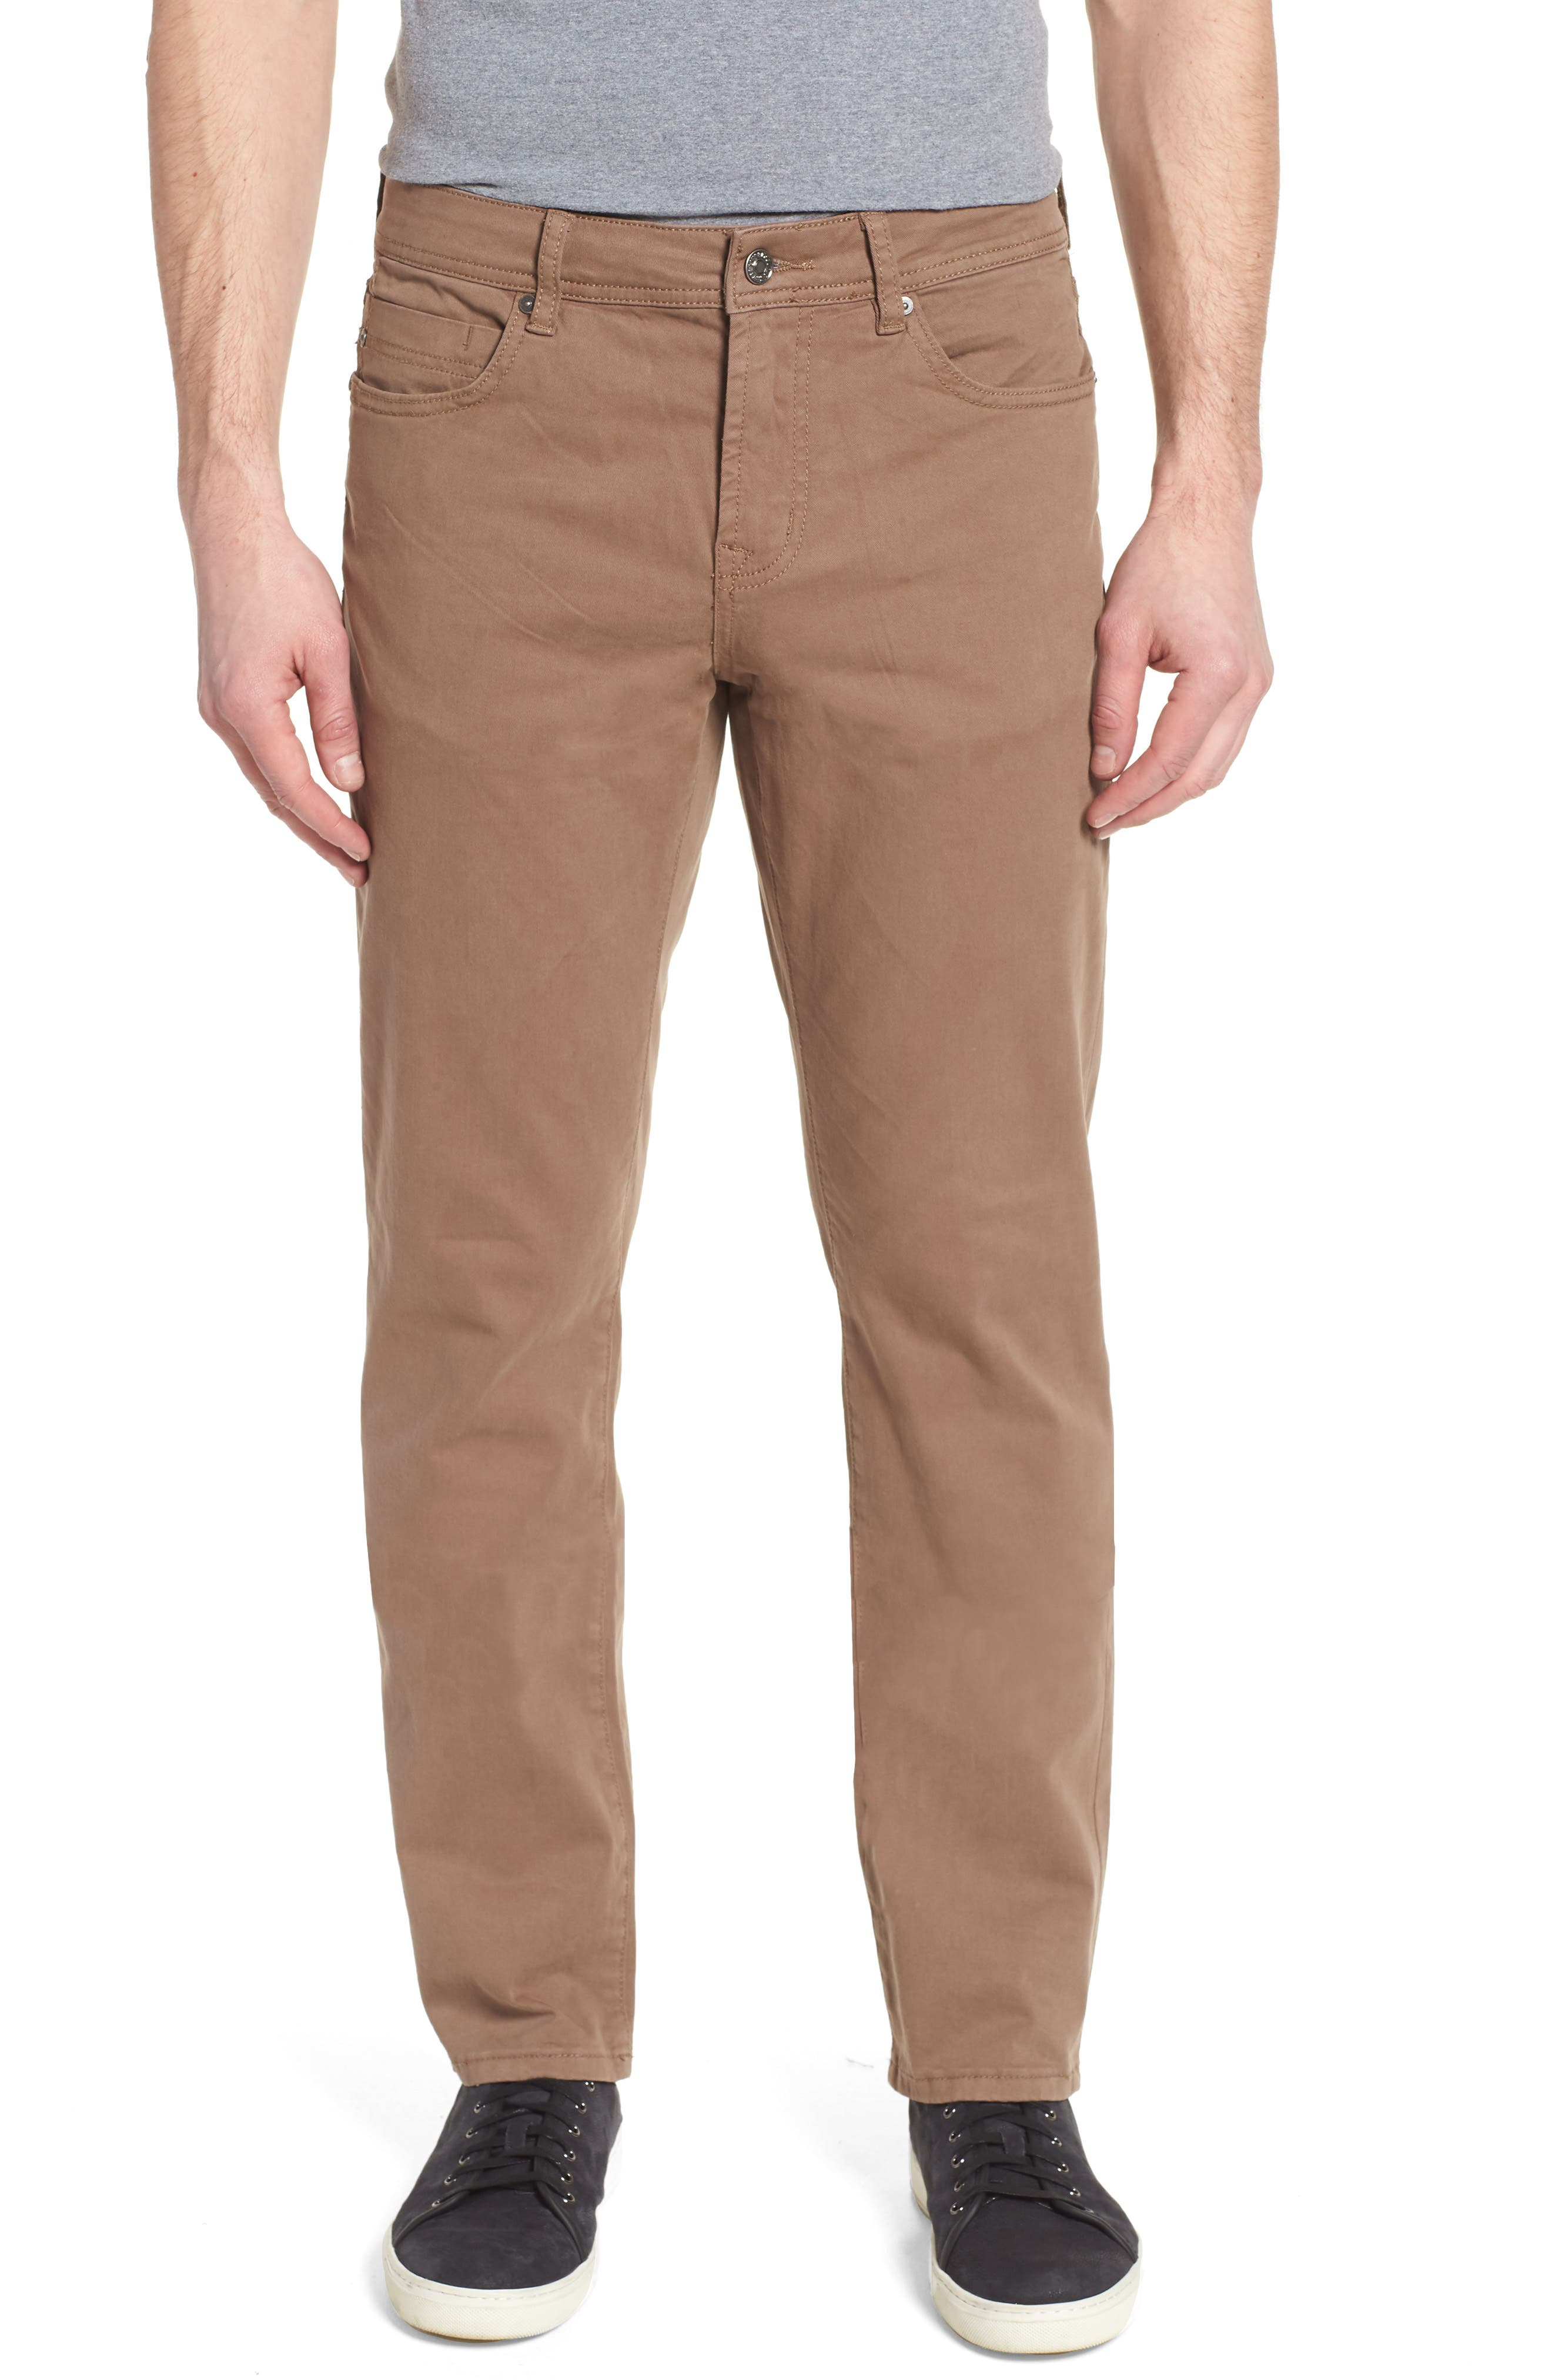 Jeans Co. Regent Relaxed Fit Straight Leg Jeans,                         Main,                         color, CUB